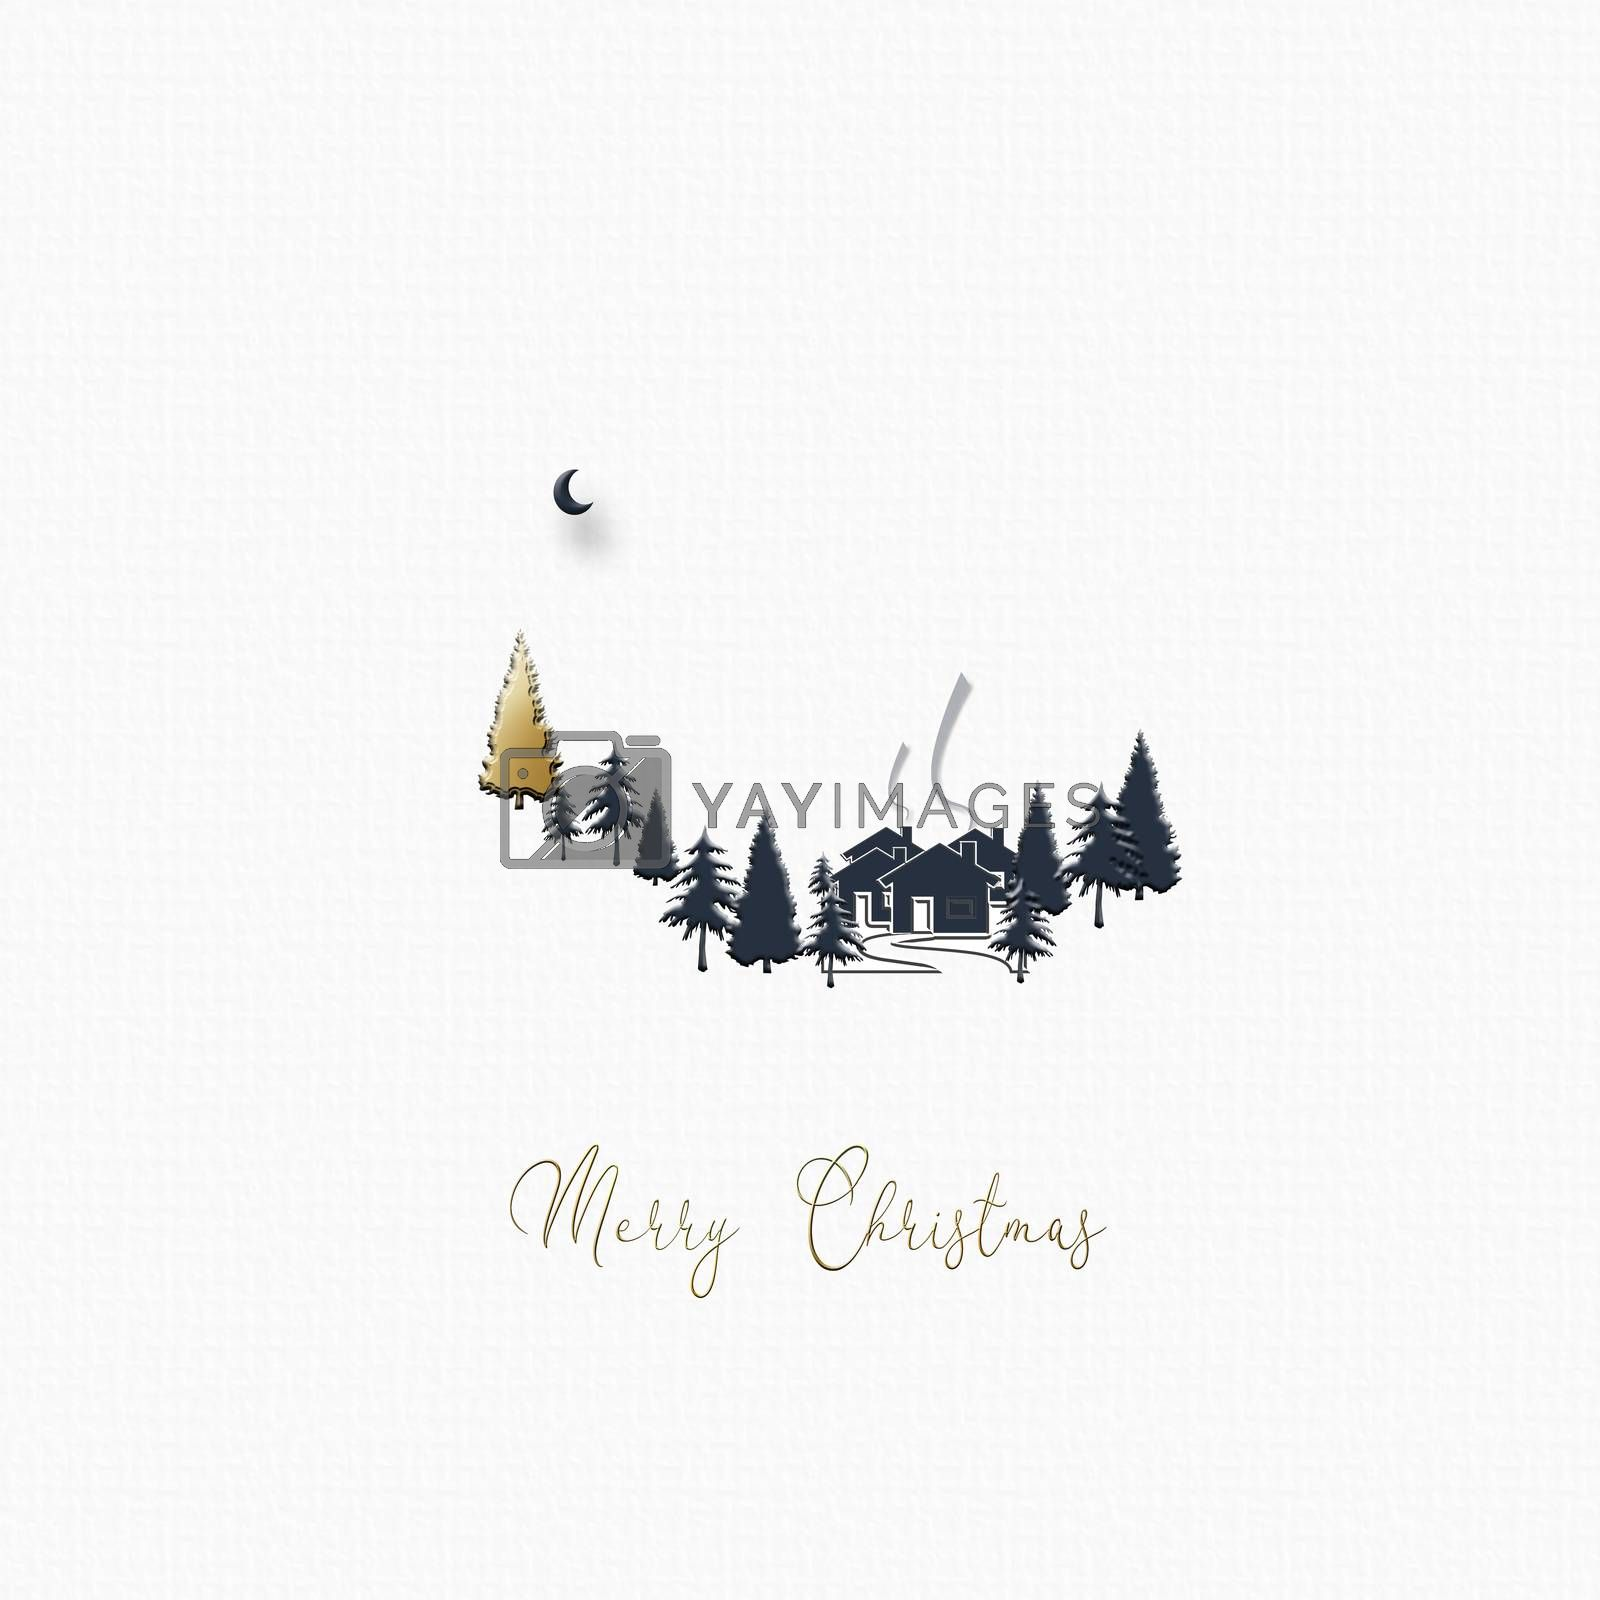 Beautiful minimalist Christmas 2021 New Year winter landscape with houses, moon, pine fir and gold Christmas tree on white background. Text Merry Christmas. Design, poster. 3D Illustration